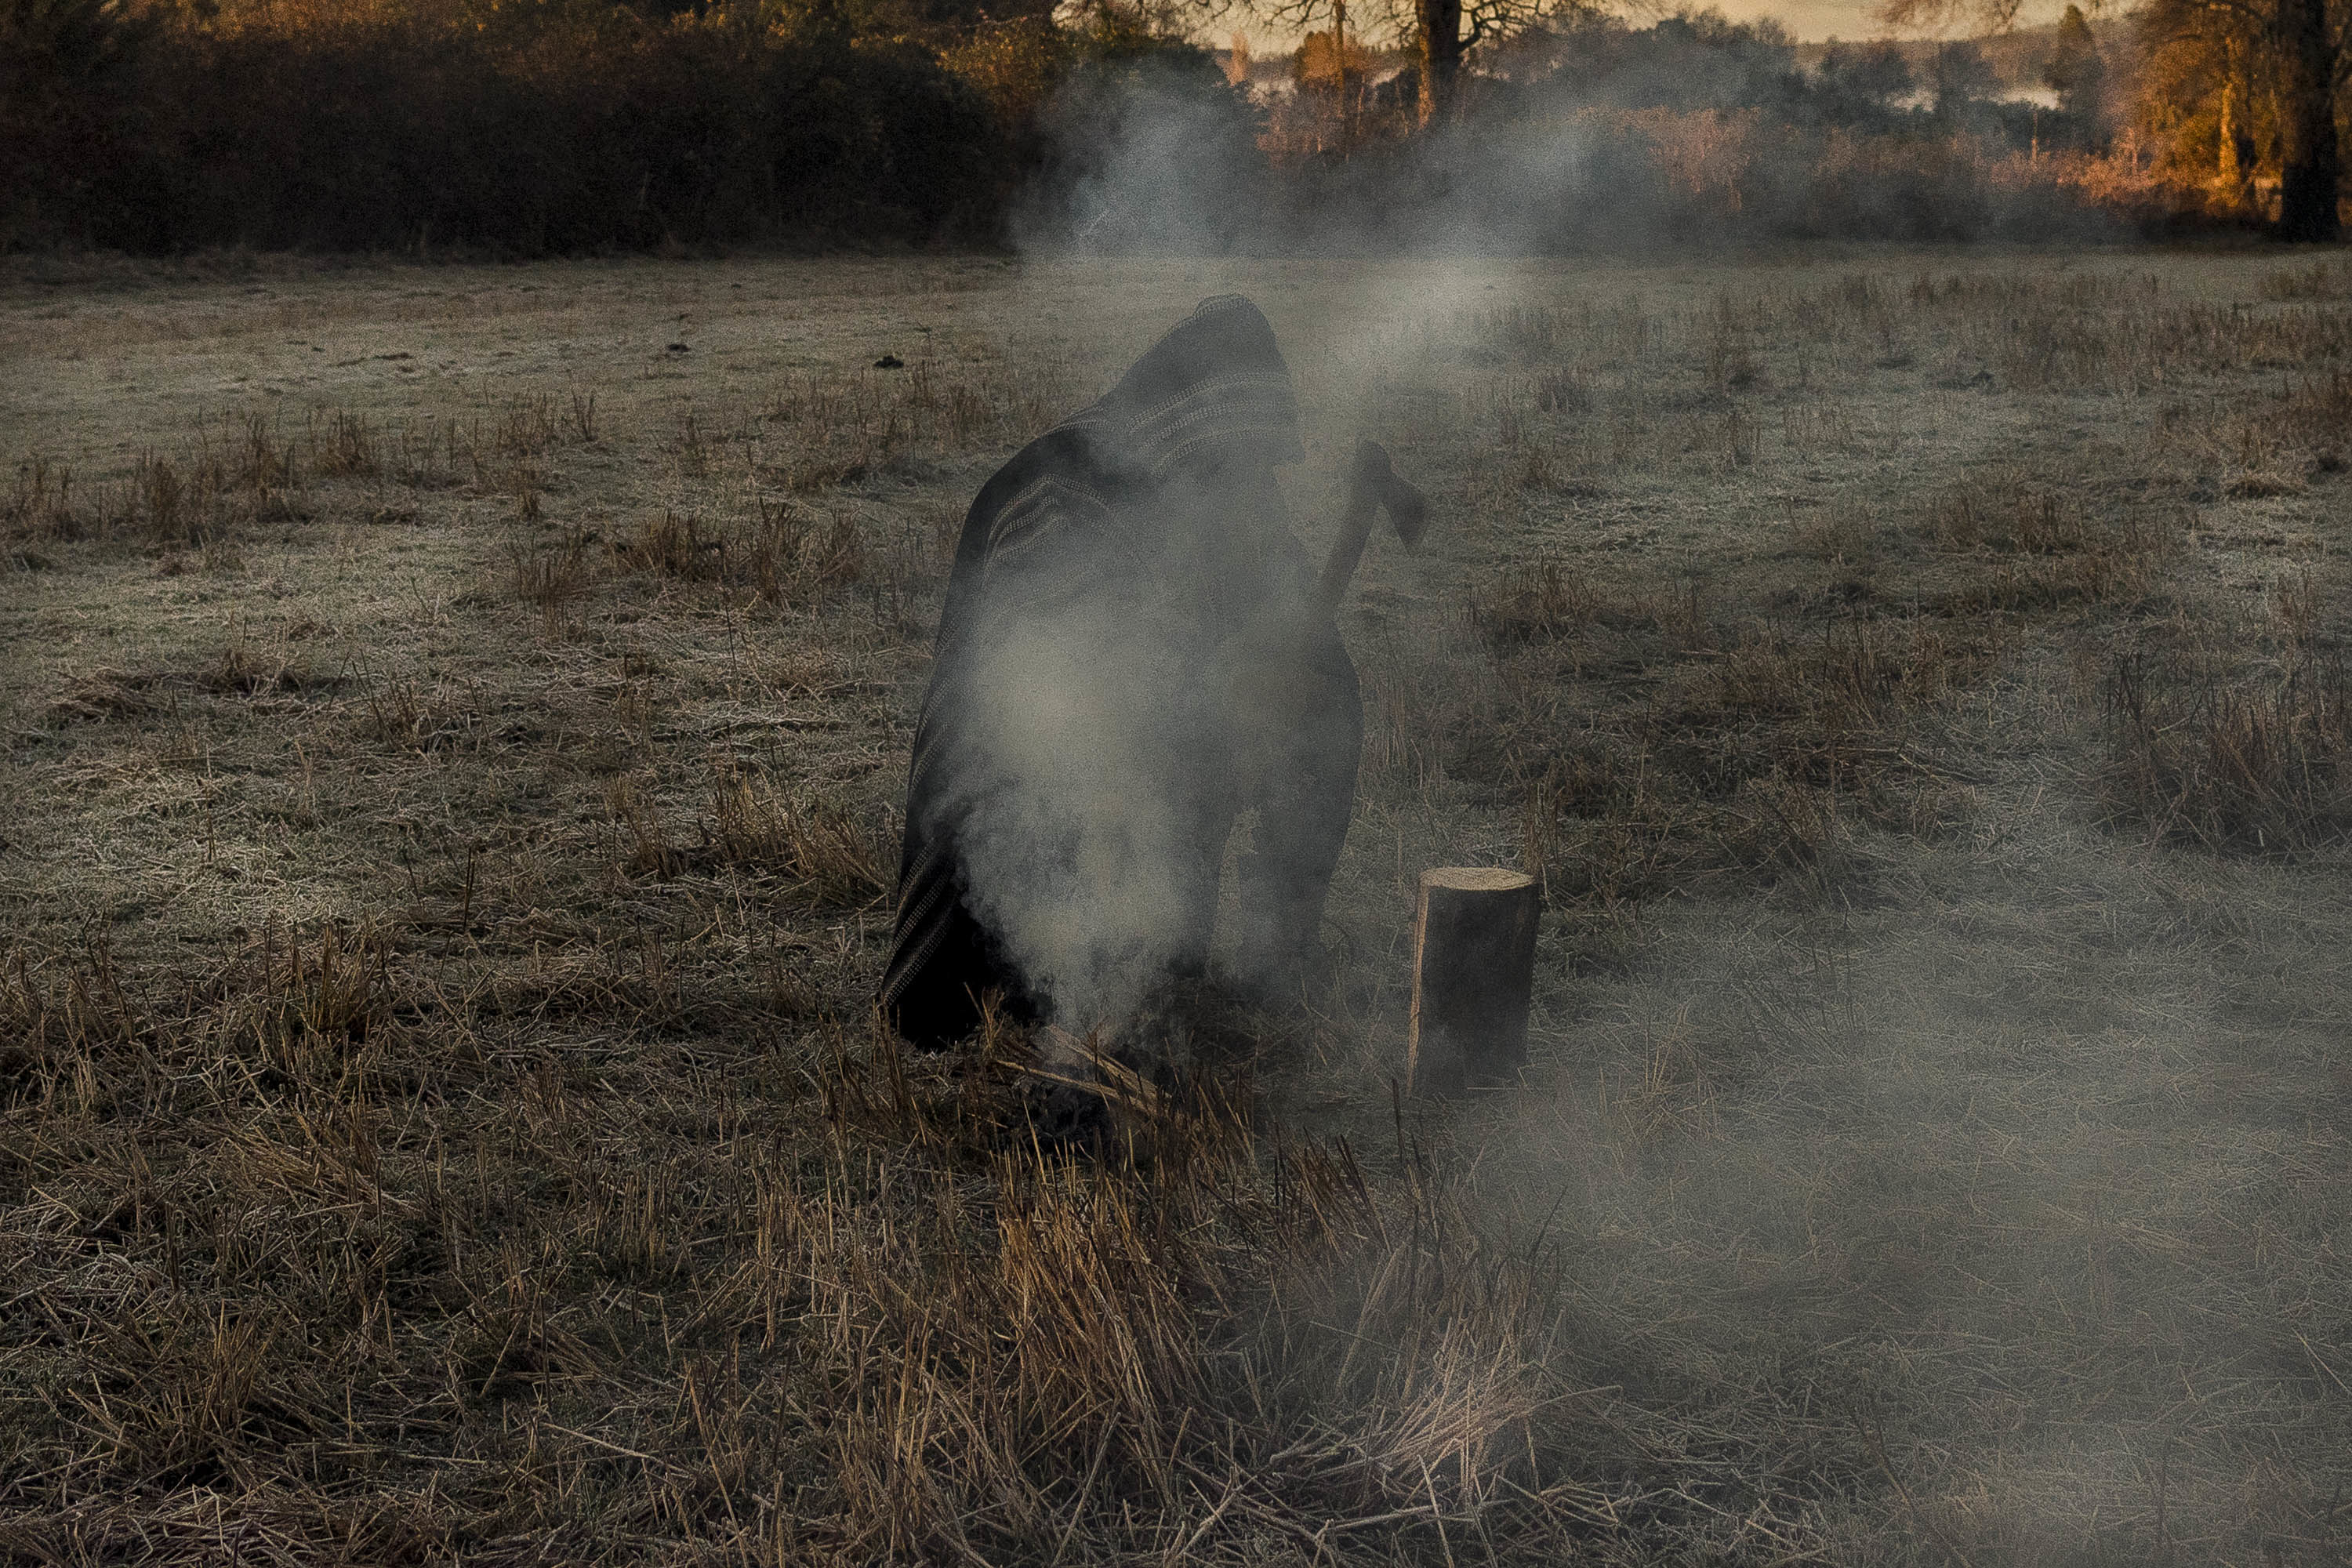 Man stands in field with smoke